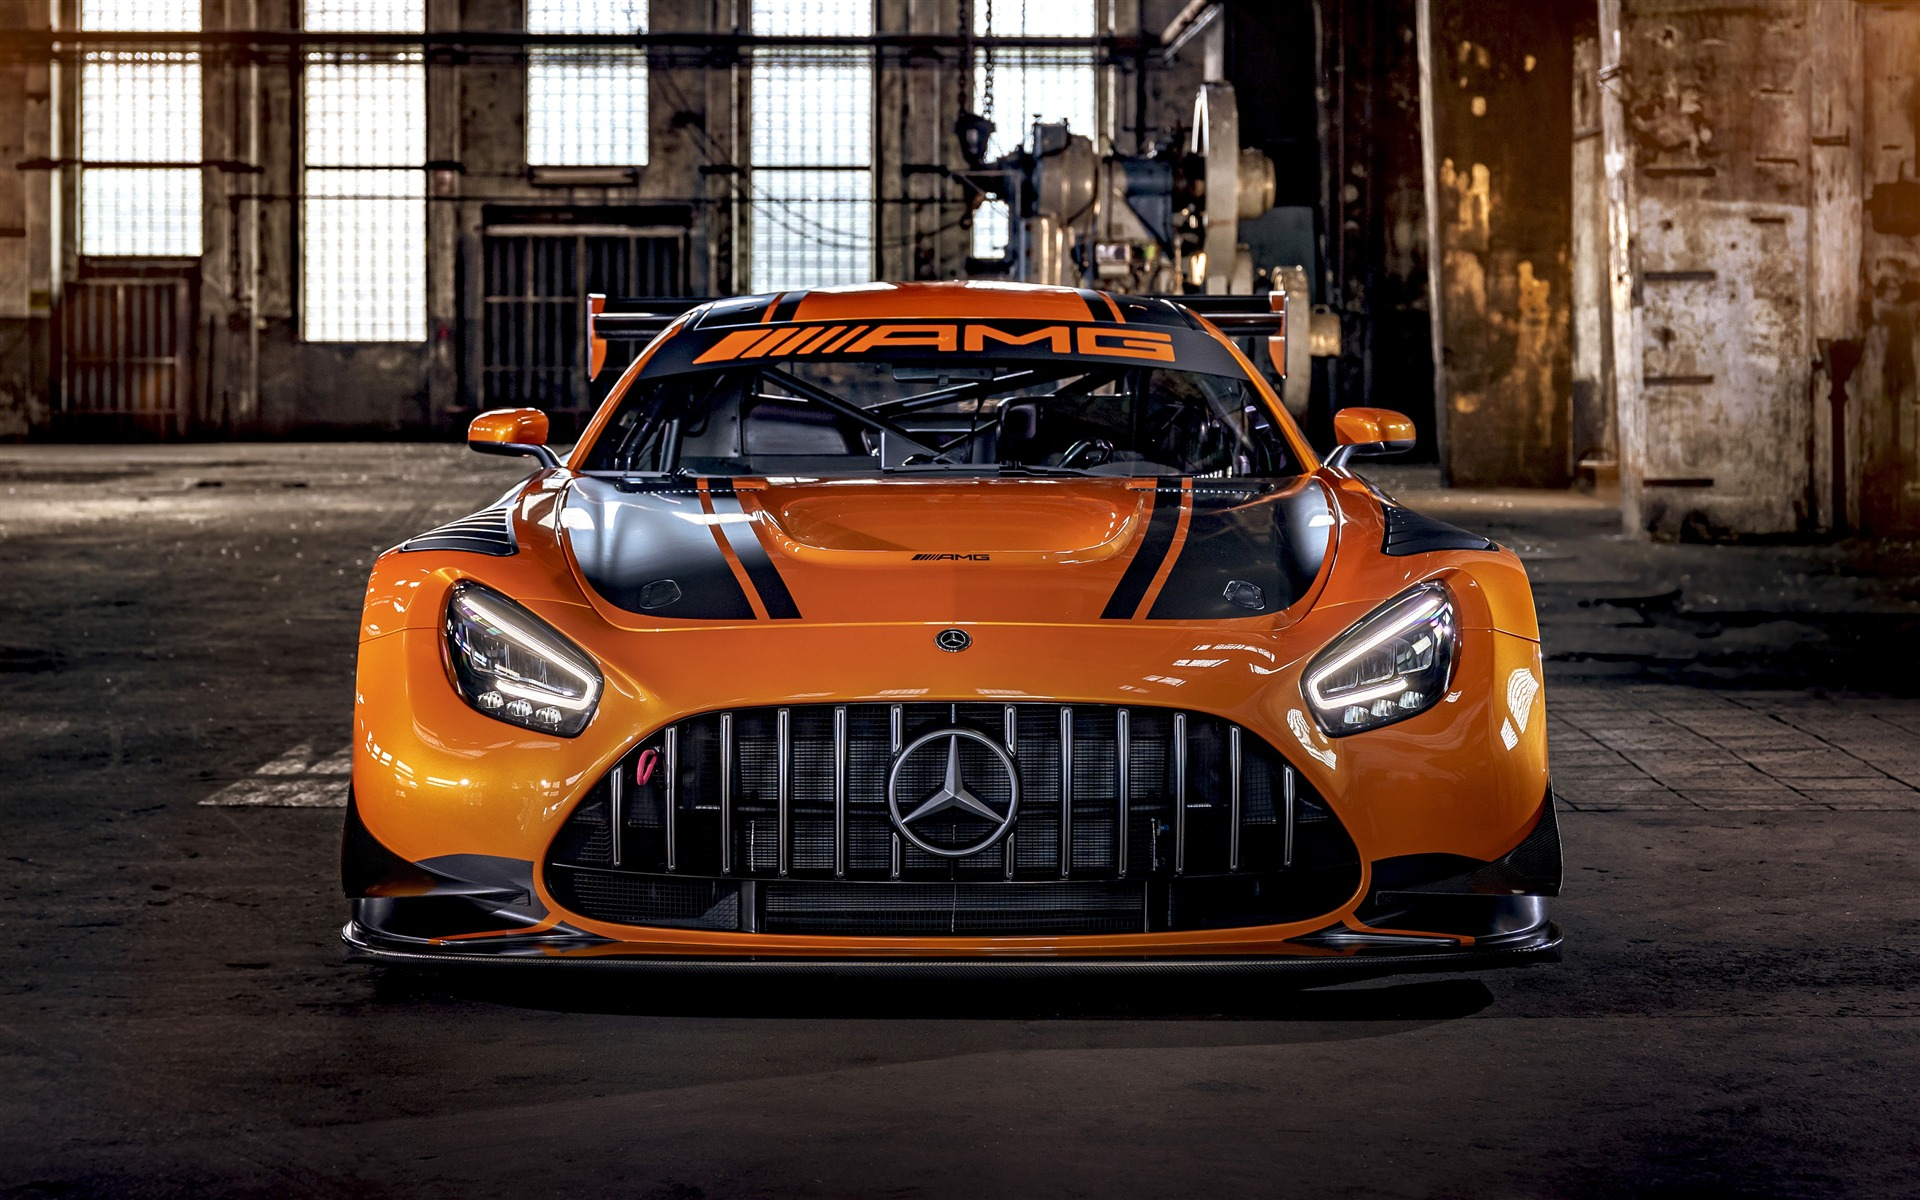 Mercedes Amg Gt3 2020 Sports Cars Hd Poster Preview